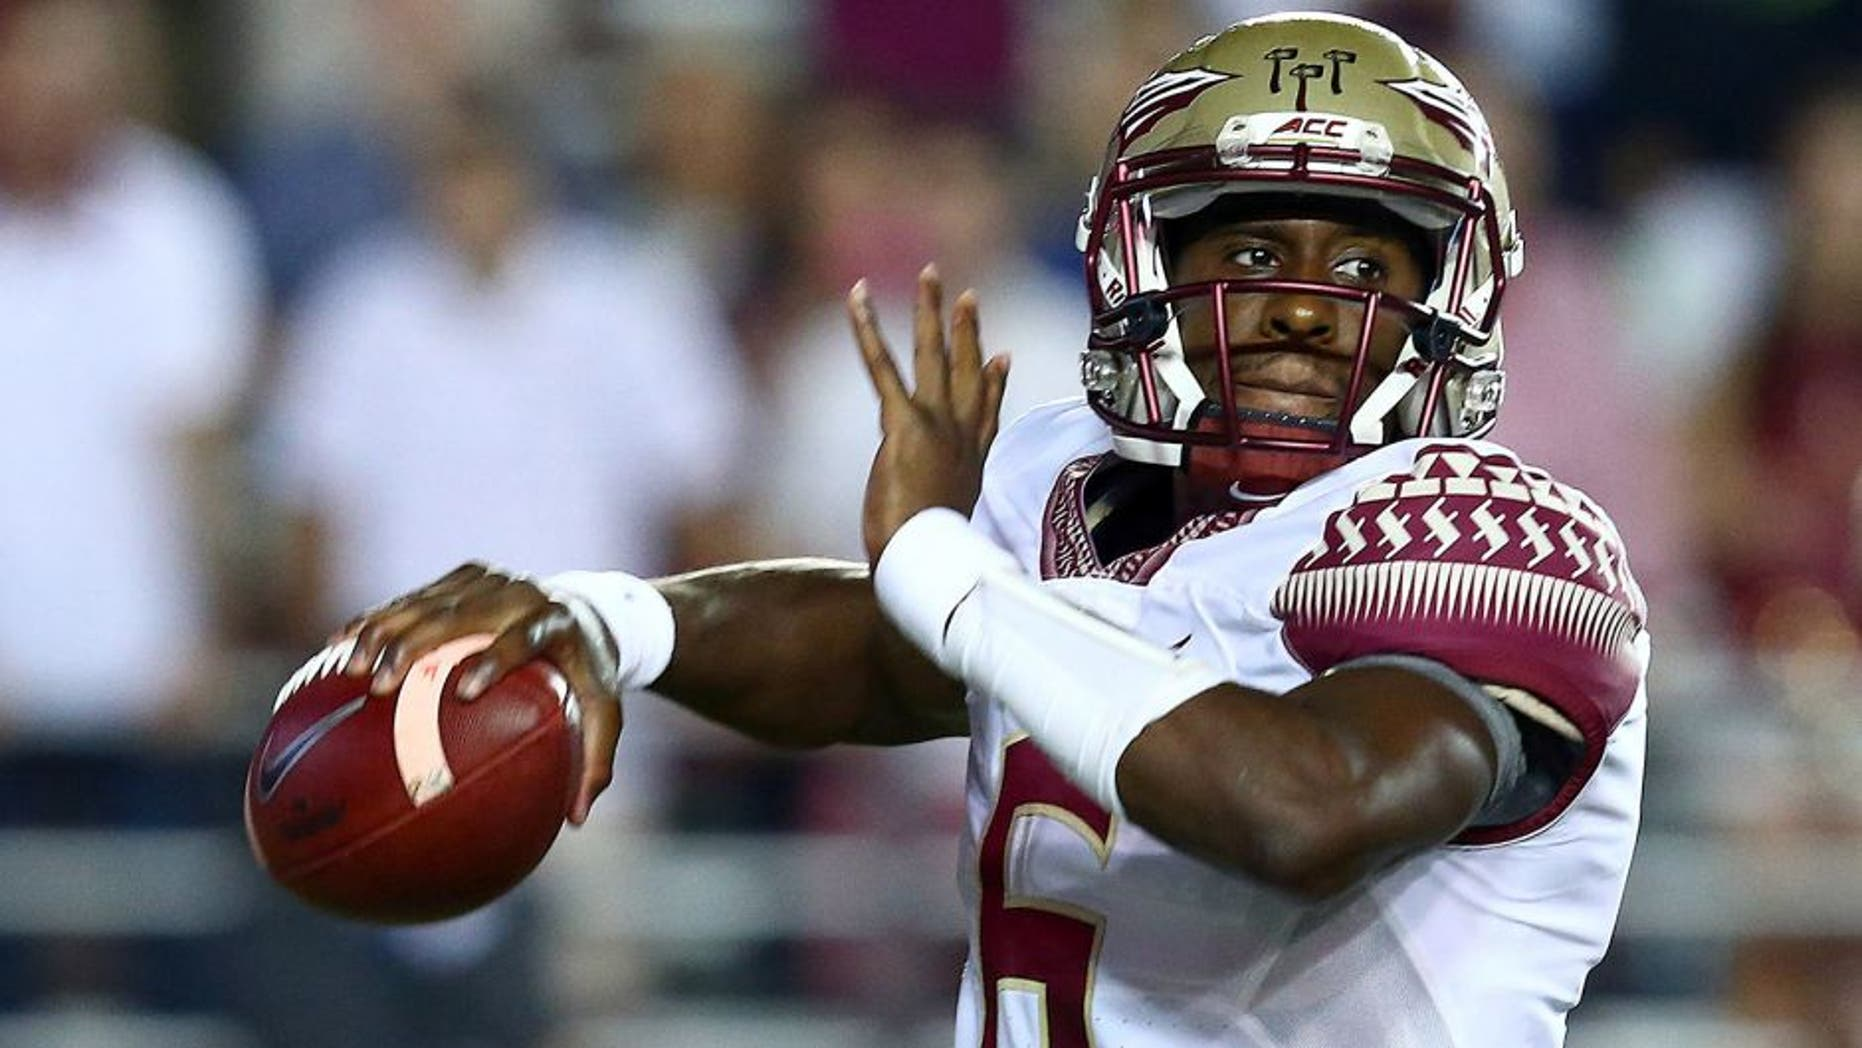 Sep 18, 2015; Boston, MA, USA; Florida State Seminoles quarterback Everett Golson (6) throws the ball against the Boston College Eagles during the first half at Alumni Stadium. Mandatory Credit: Mark L. Baer-USA TODAY Sports